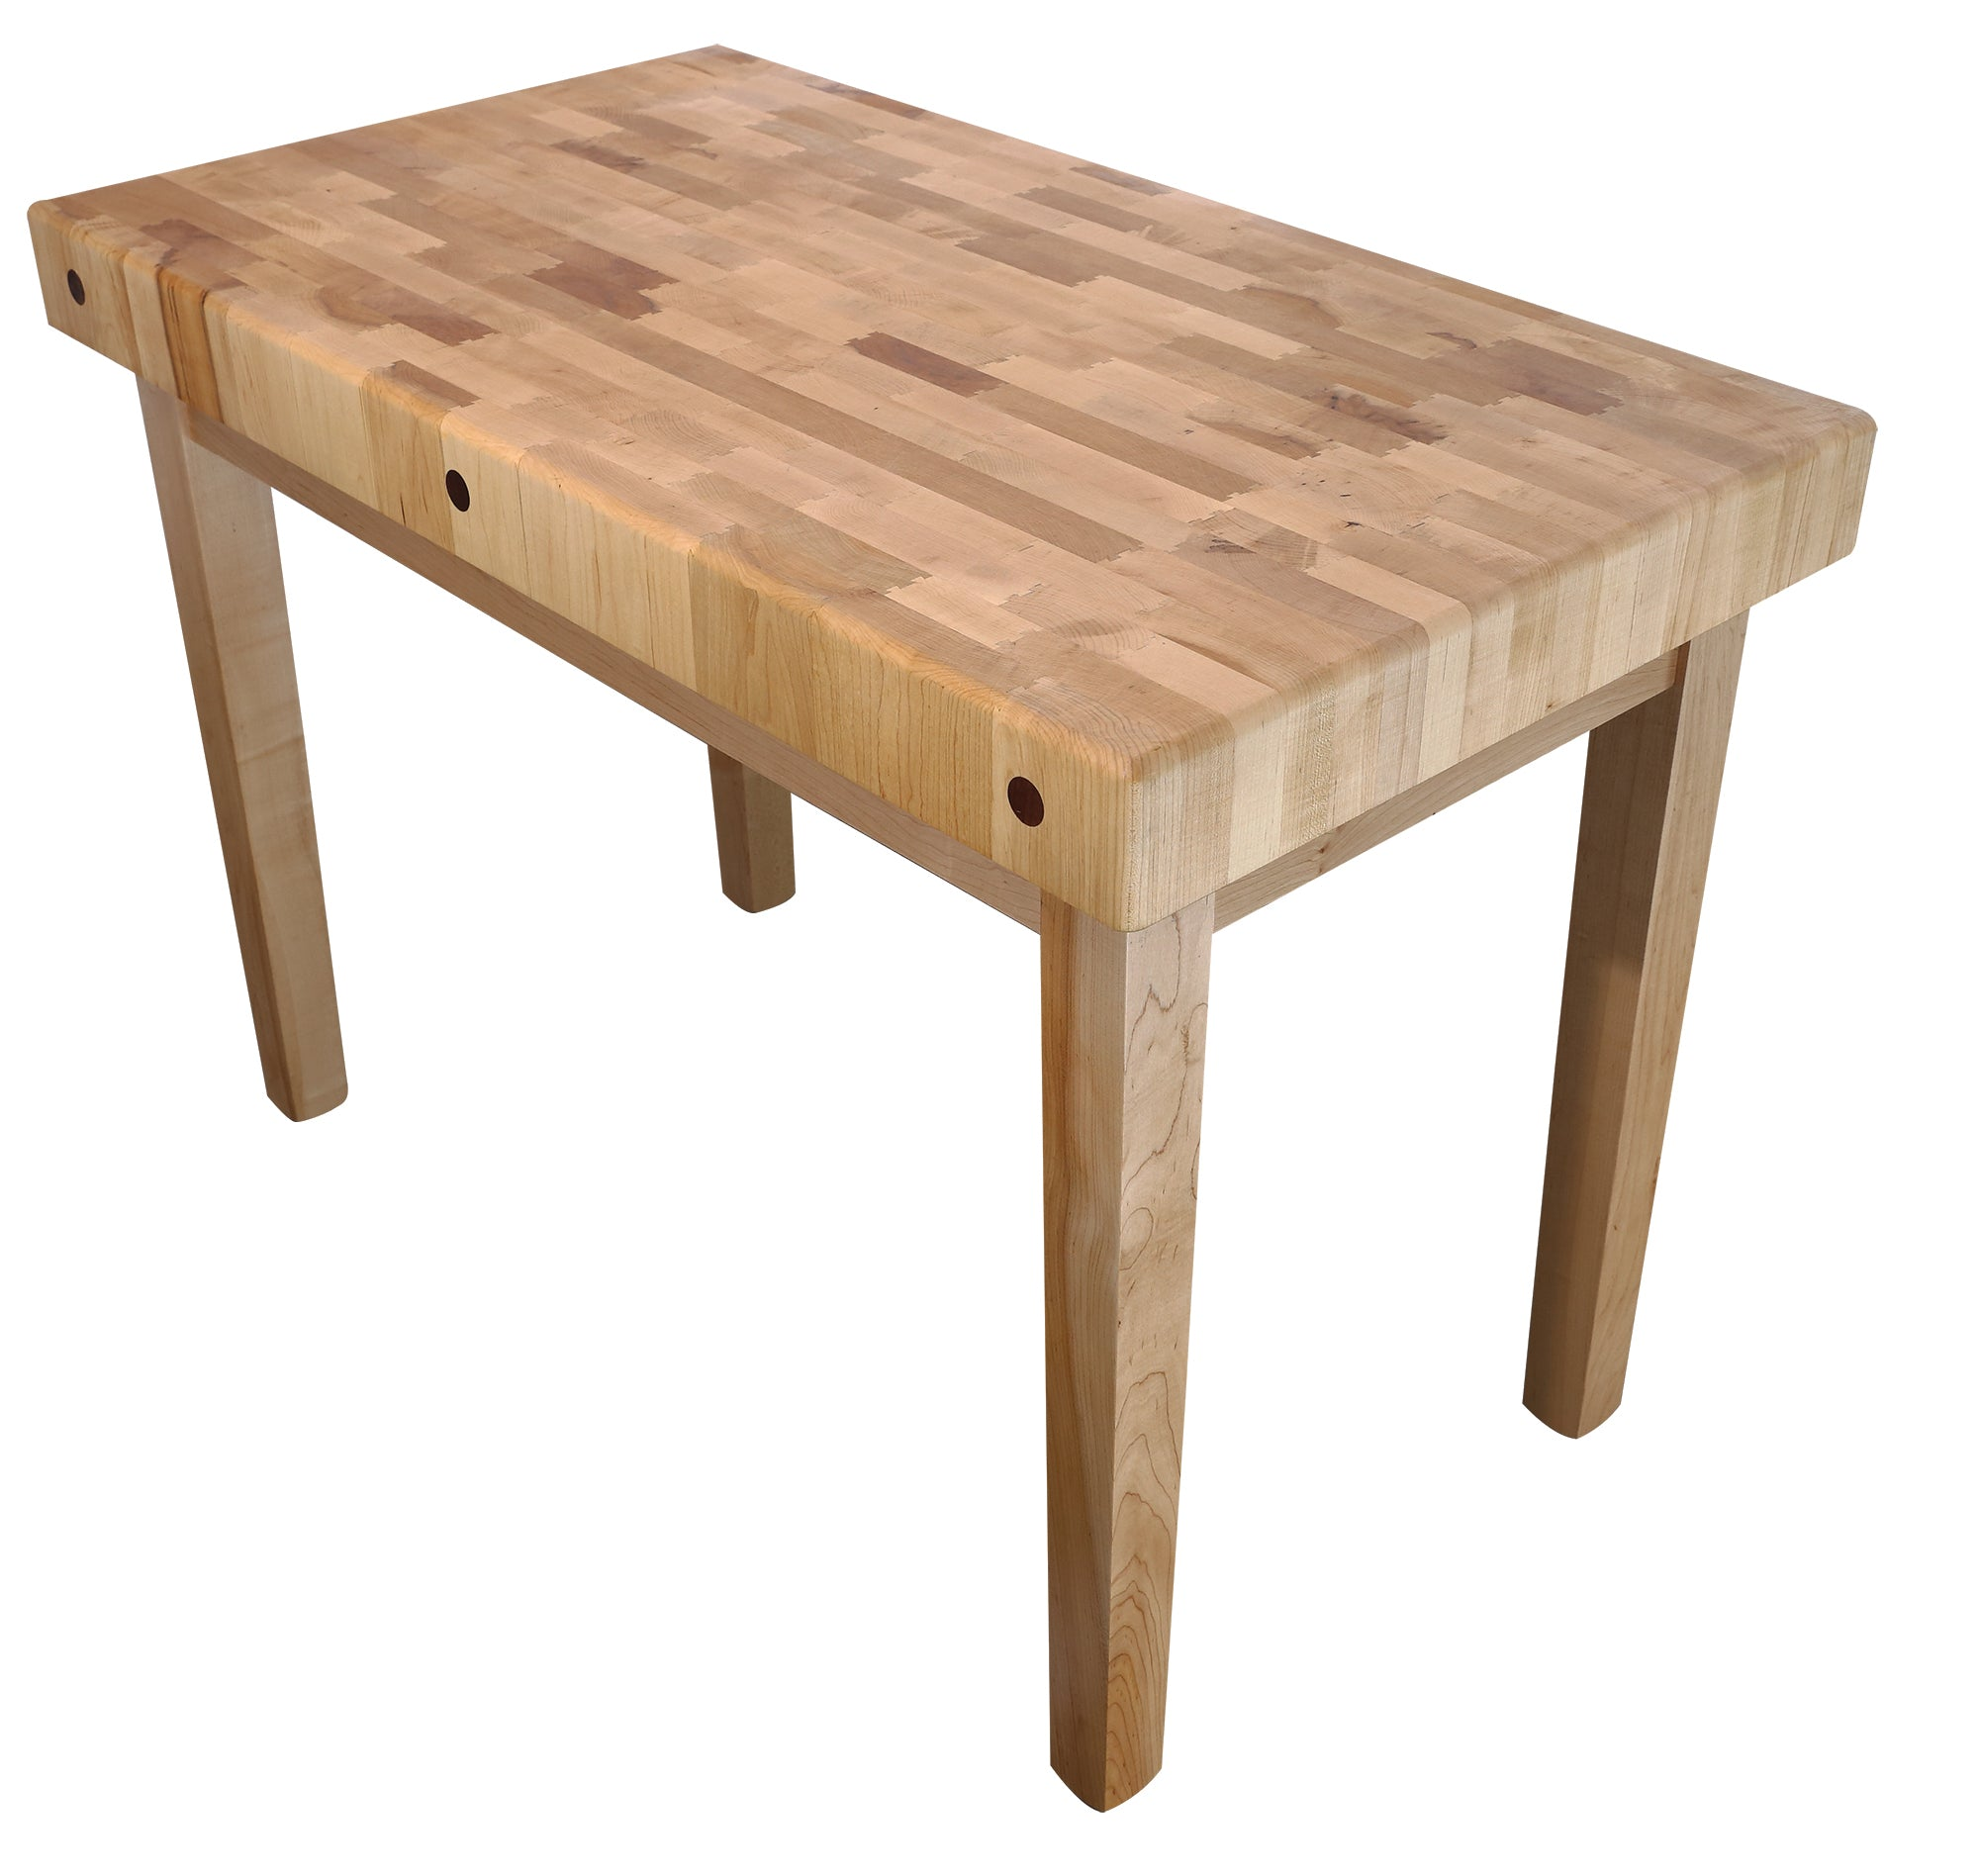 End Grain Coffee Table.Maple End Grain Table Island Double Dovetail 4 Thick